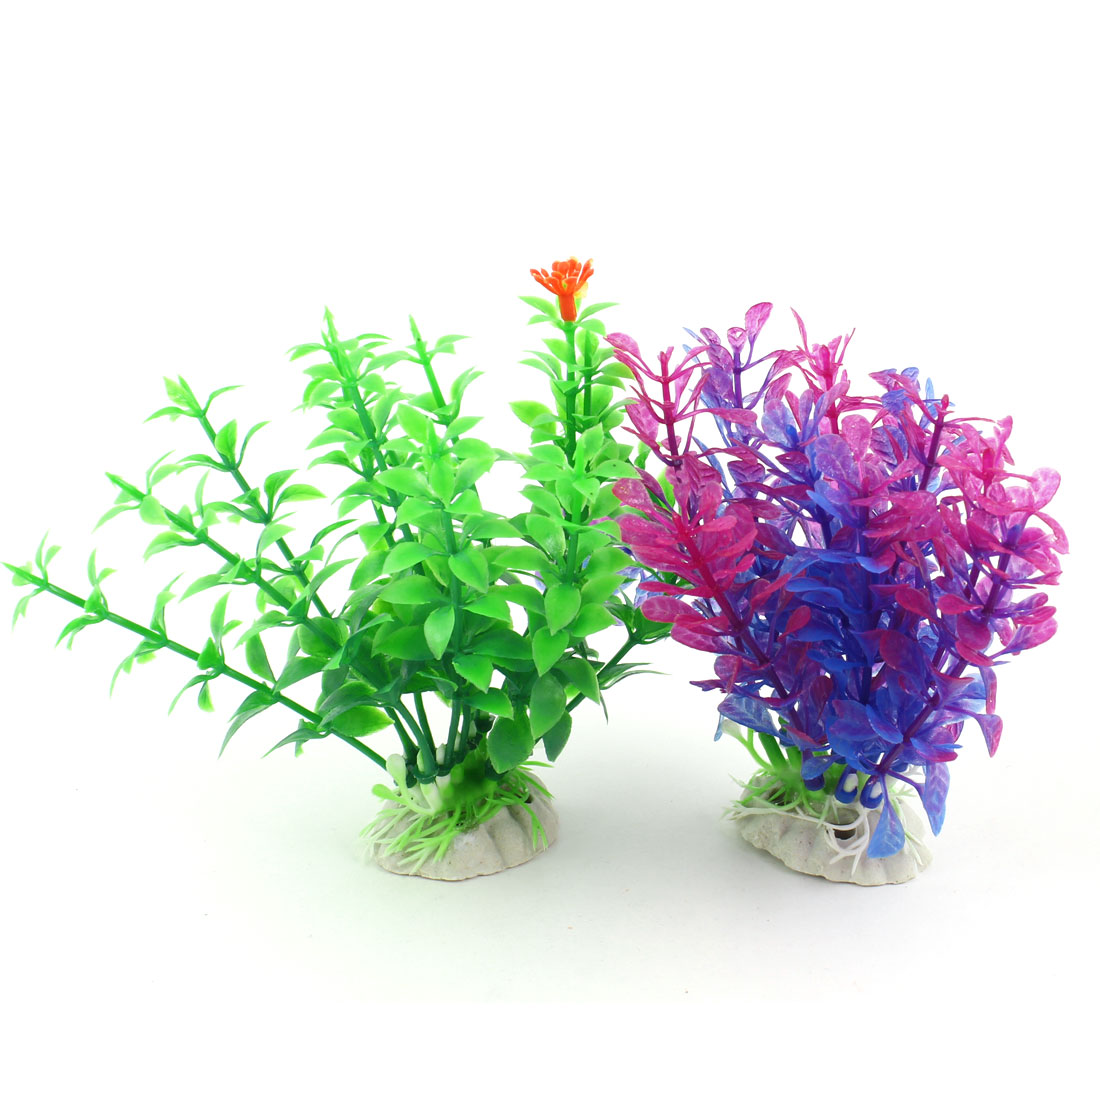 Aquarium Decor Green Fuchsia Blue Simulation Underwater Plants Grass 2 Pcs